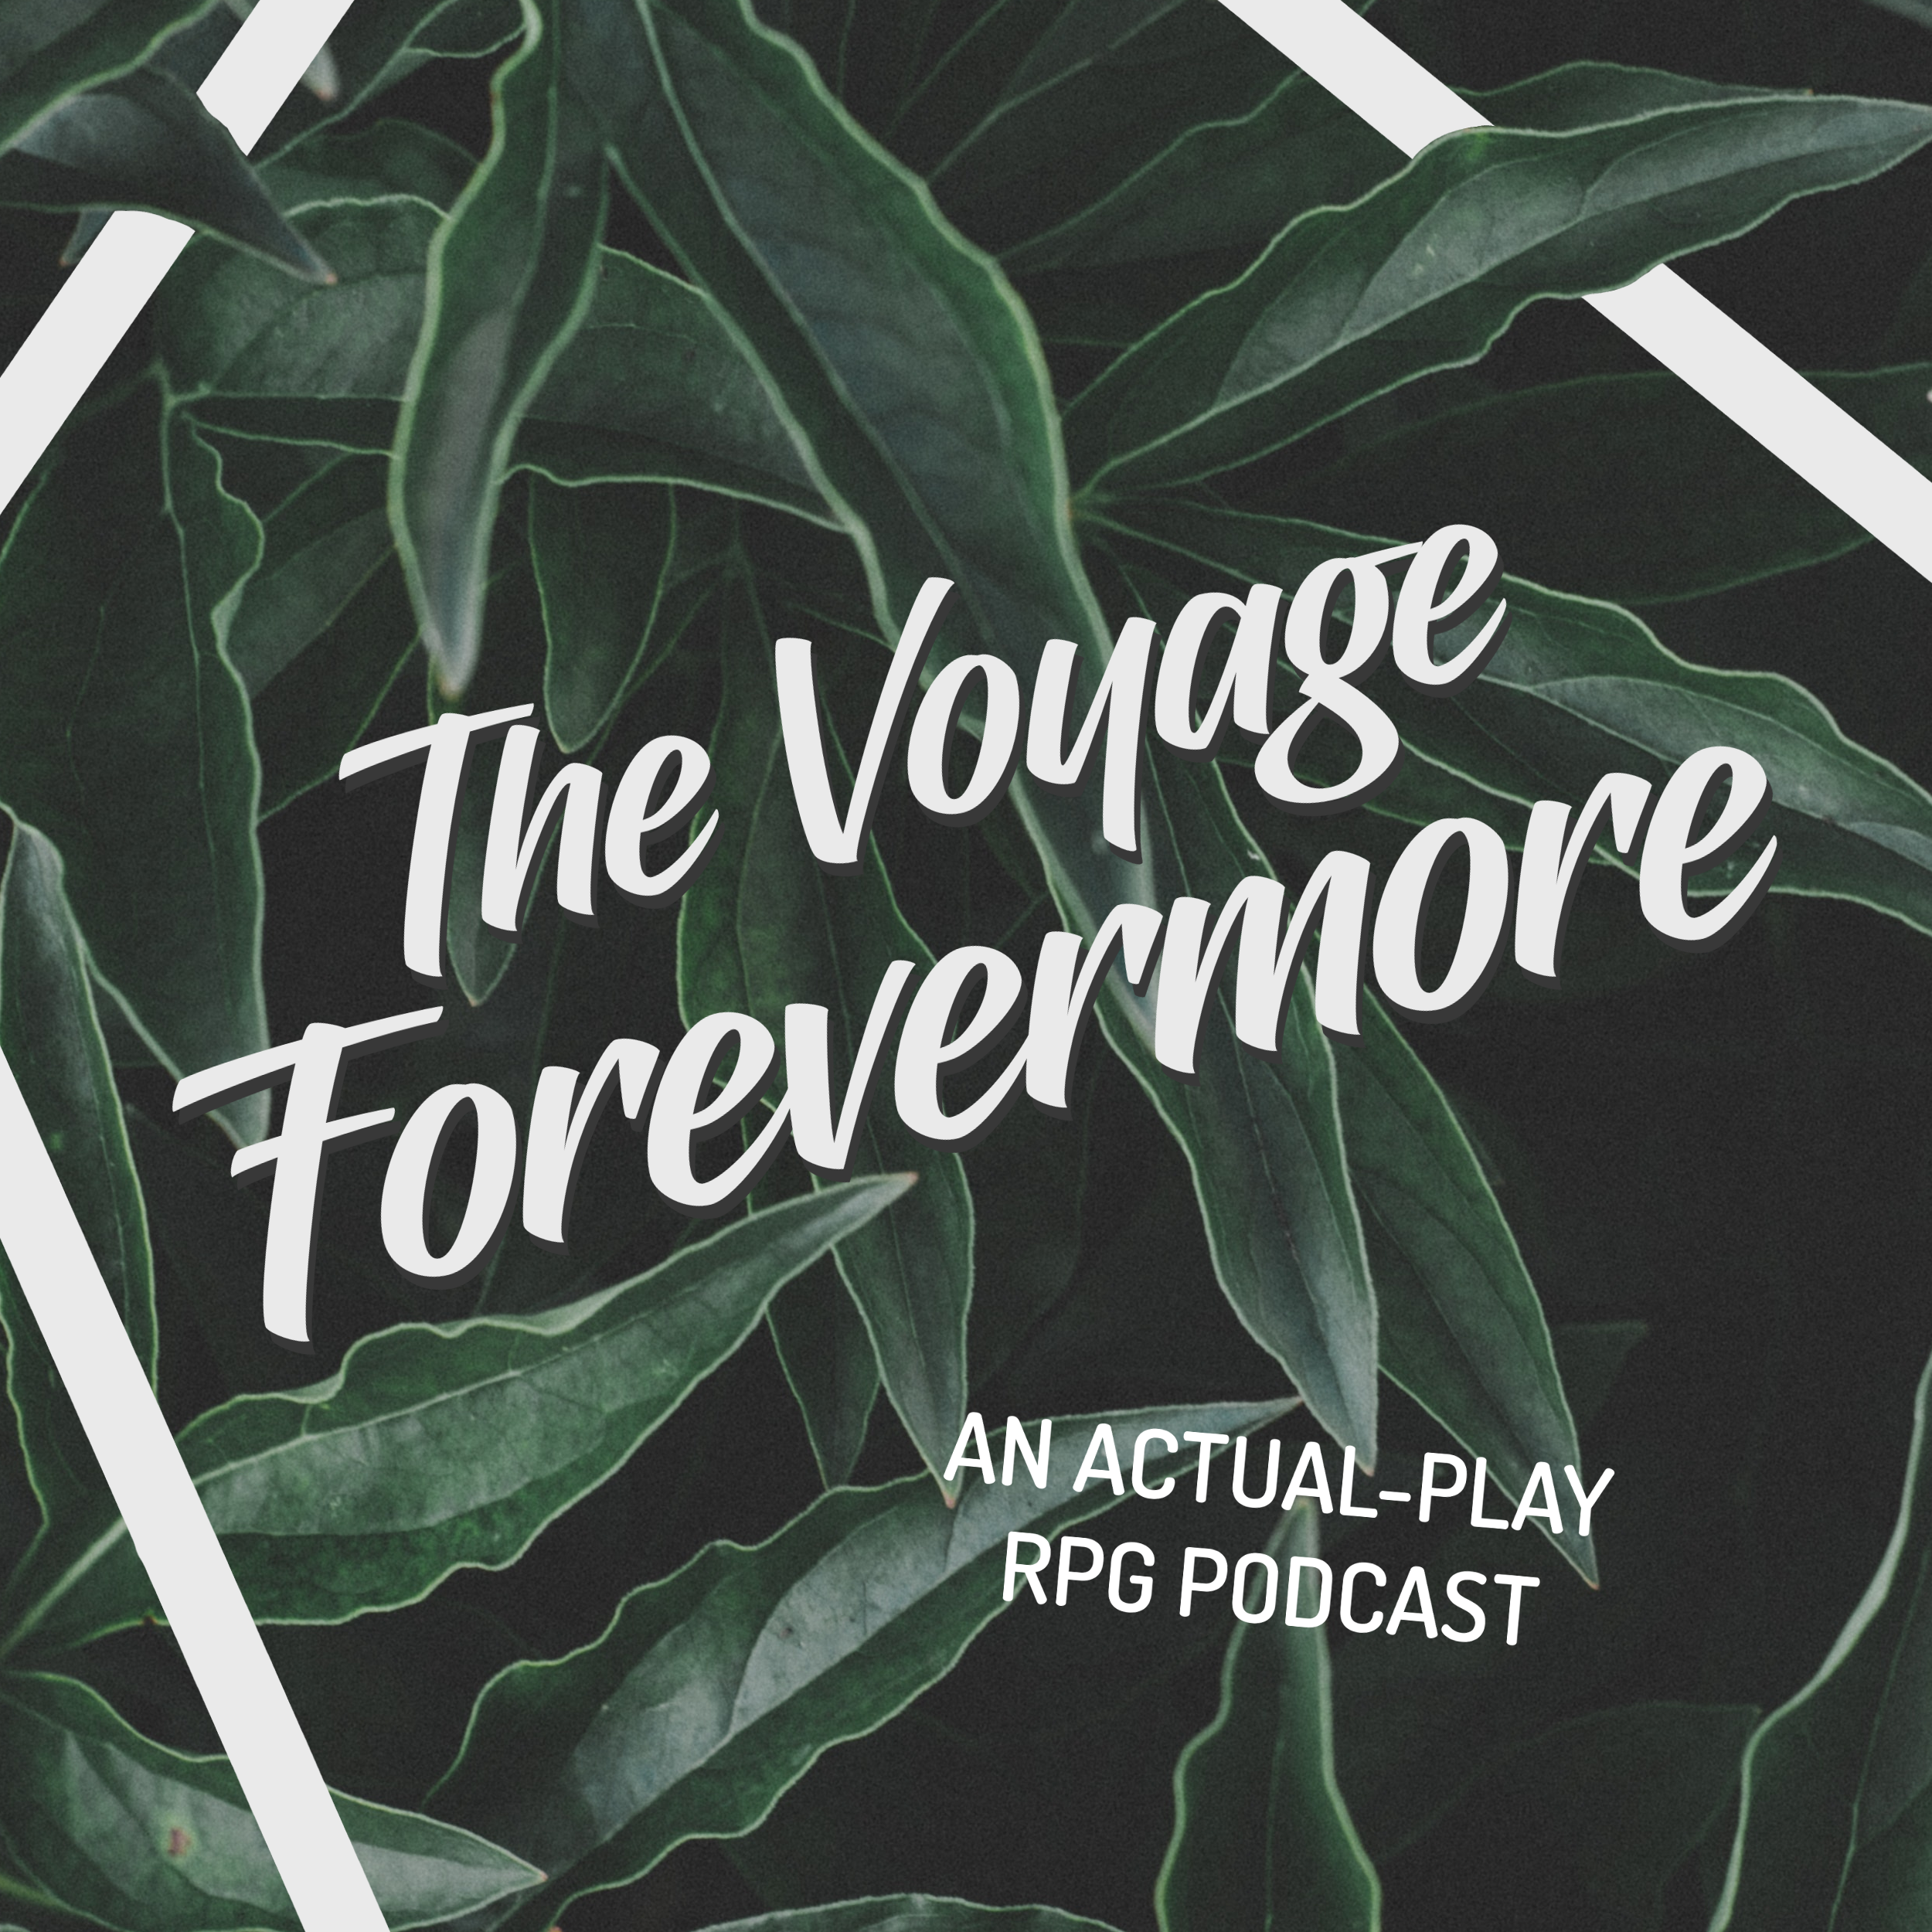 The Voyage Forevermore show art